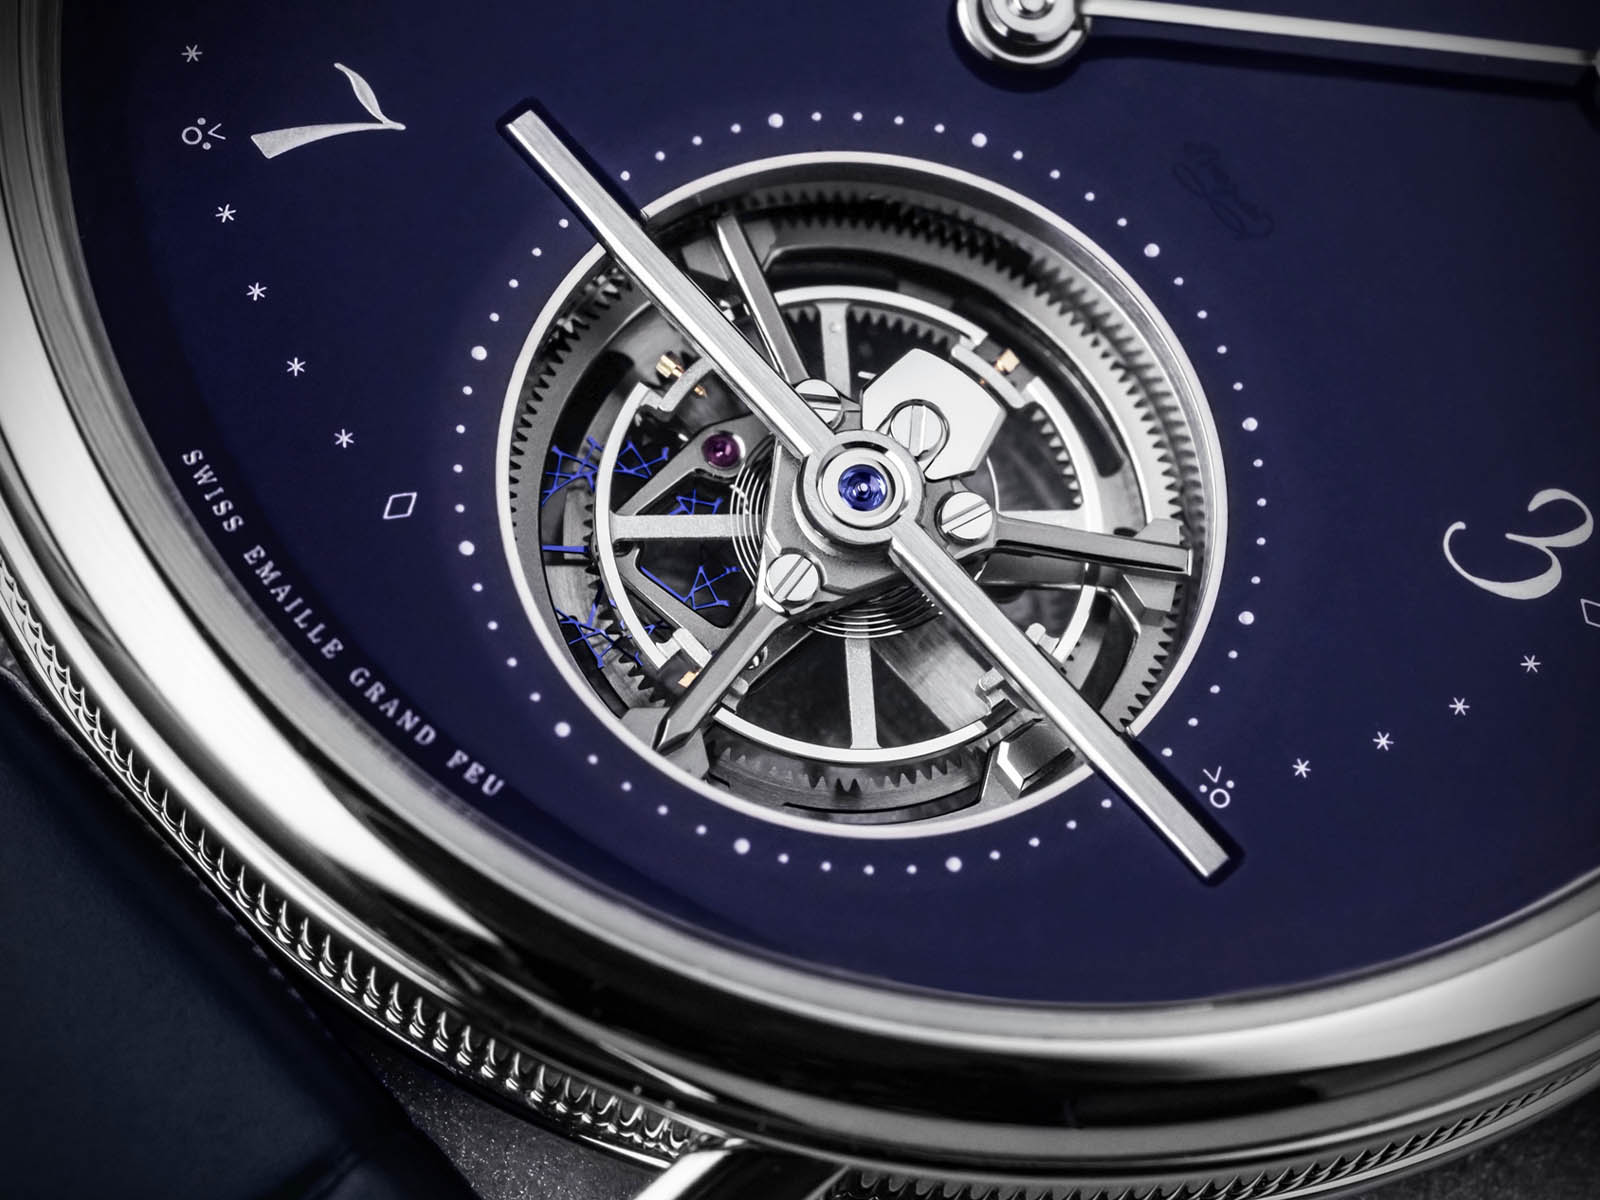 Breguet watches Classique Tourbillon Extra-Plat 5367PT Blue Dial Platinum